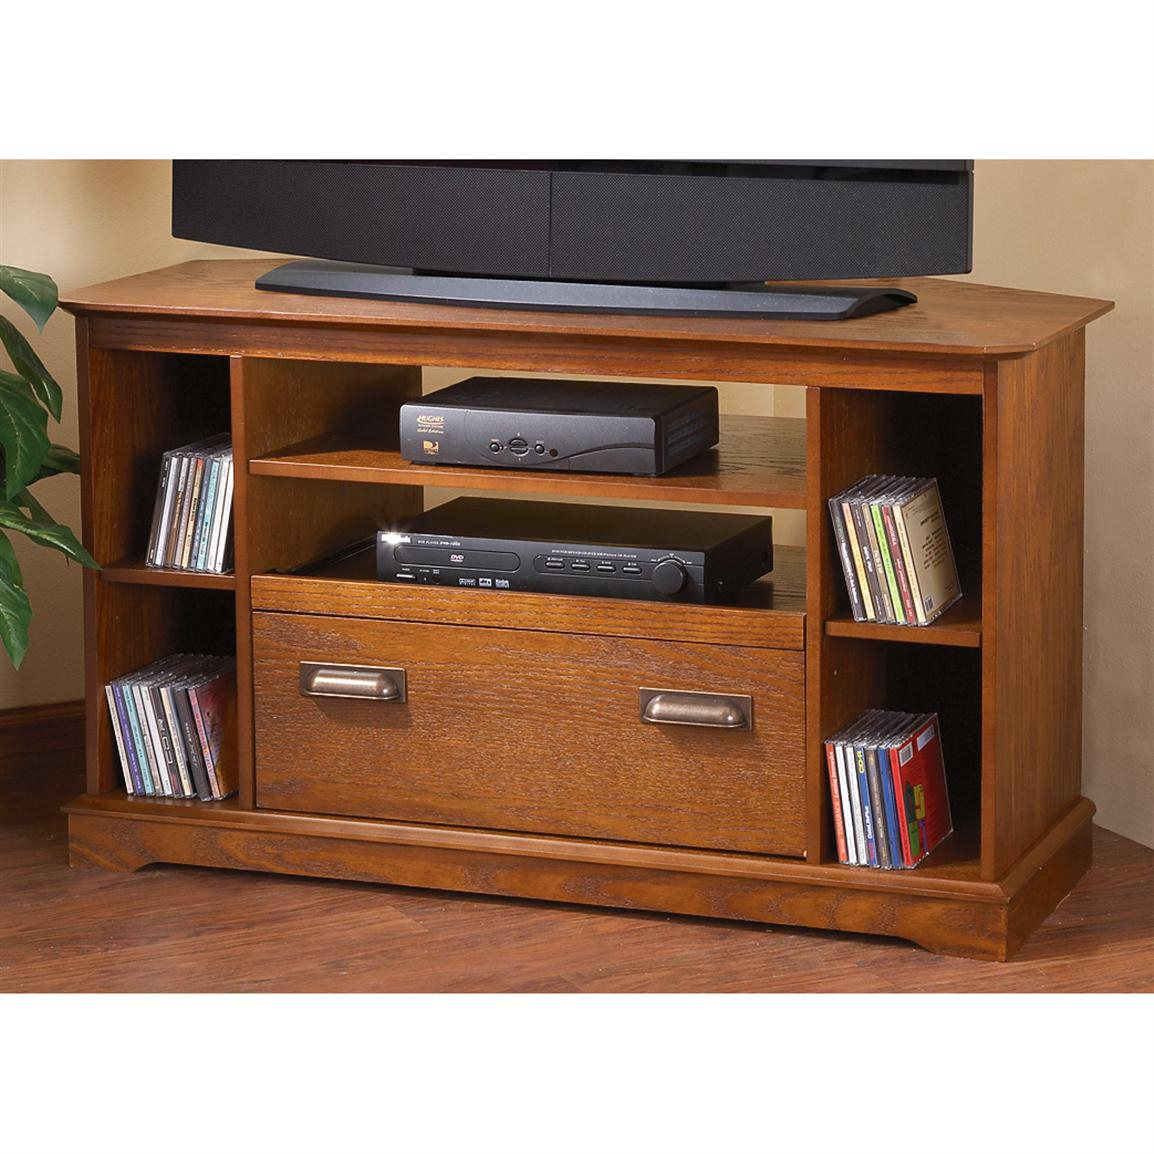 Antique Oak Corner Tv Cabinet – 154271, At Sportsman's Guide In Corner Tv Cabinet With Hutch (View 2 of 15)